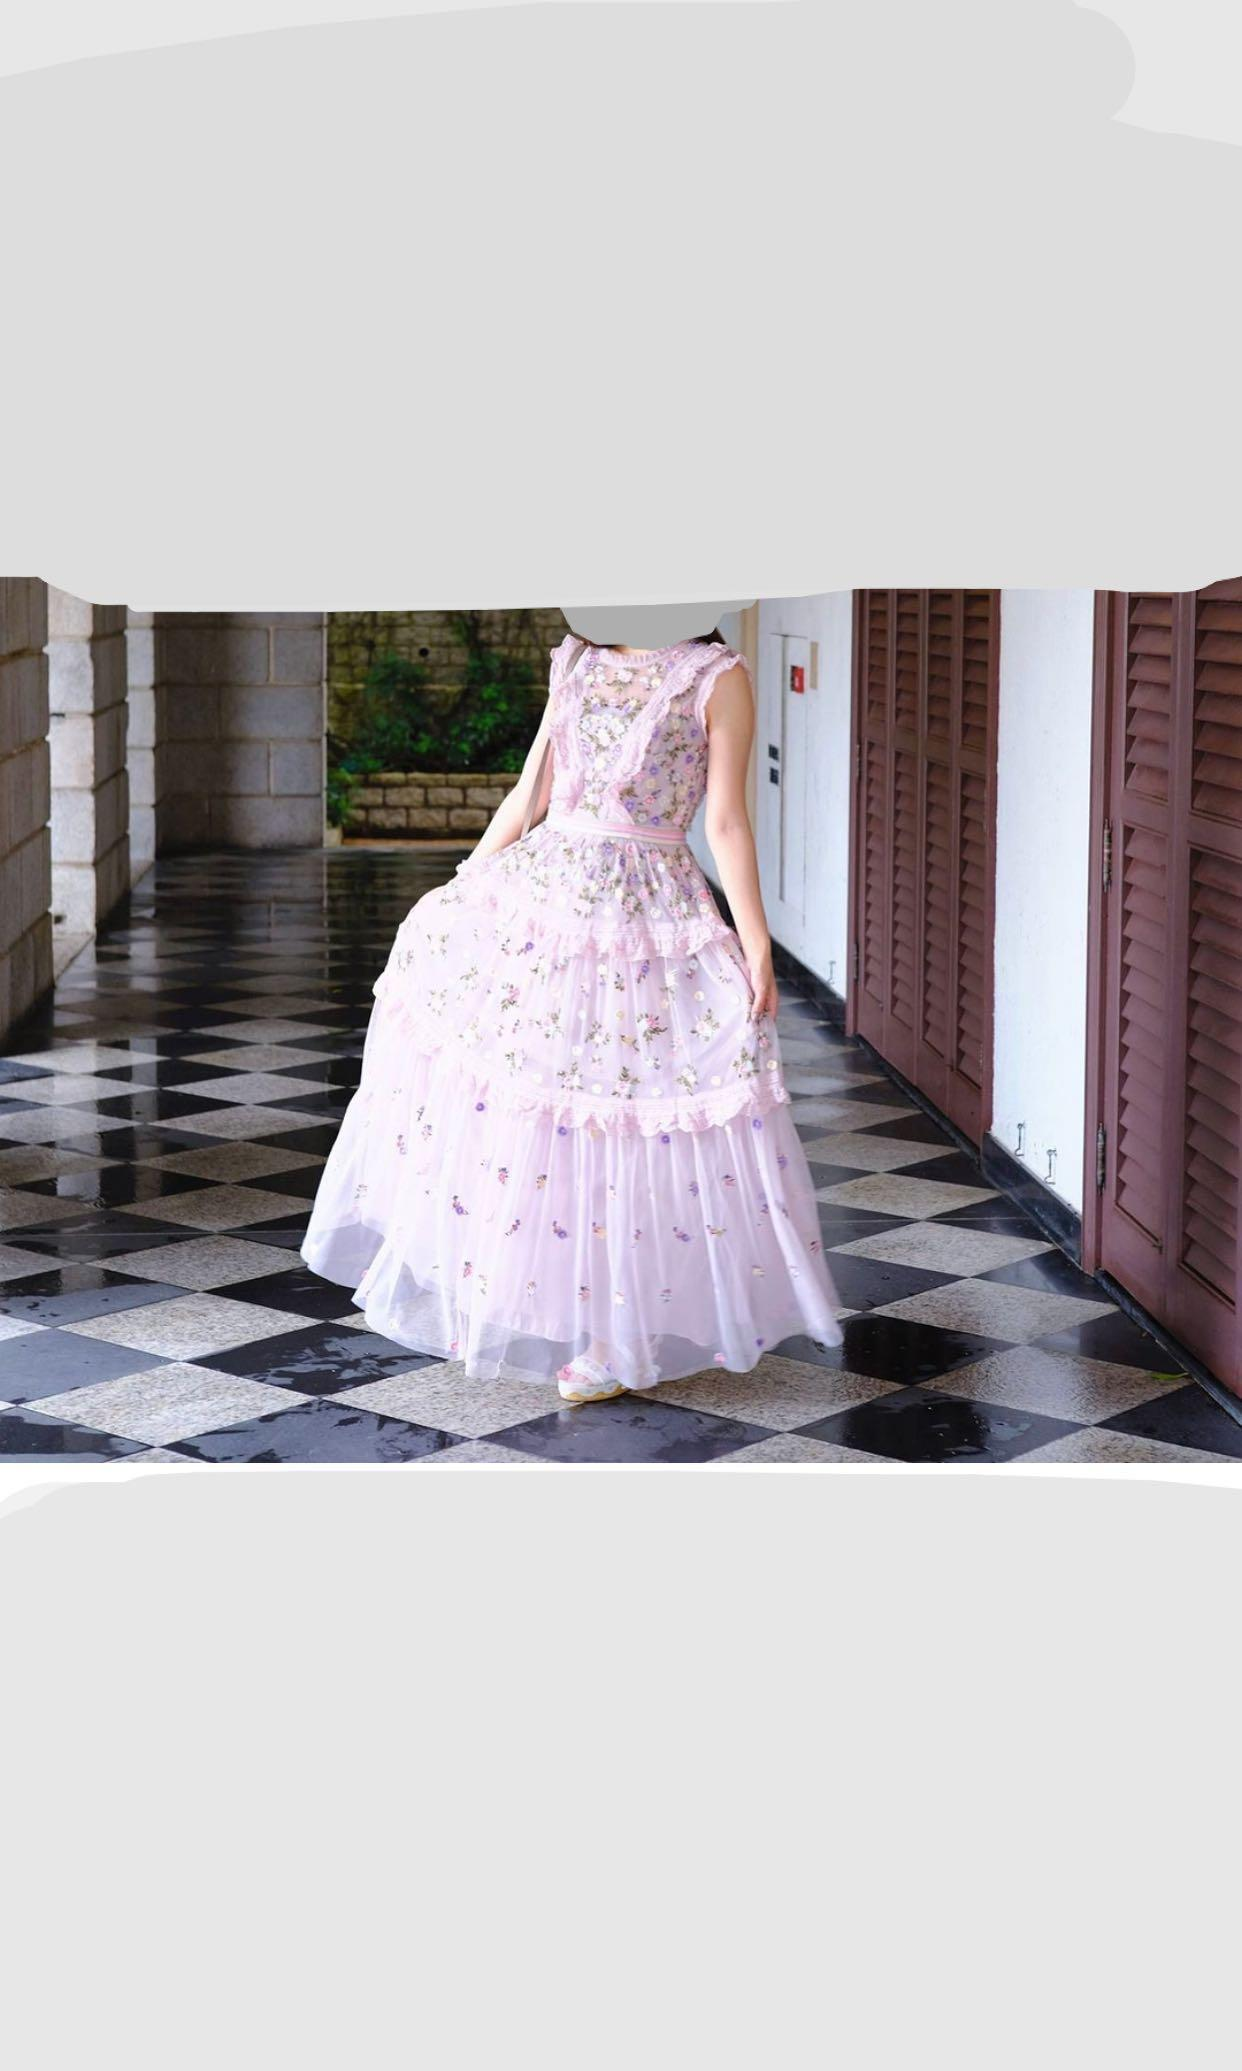 Needles & thread pink gown dress